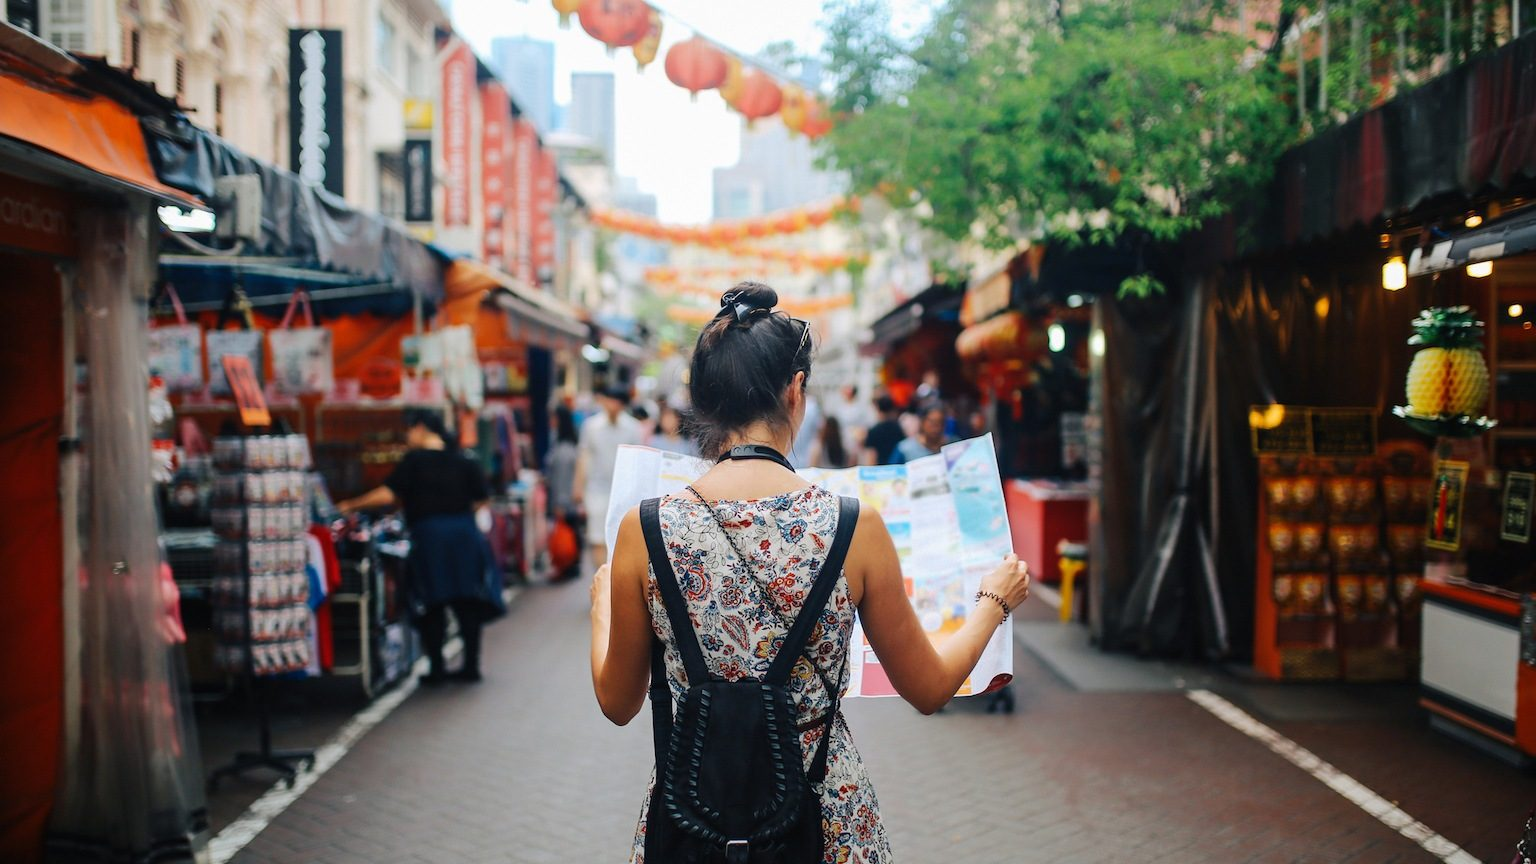 Young traveler woman in Singapore street market checking the map.